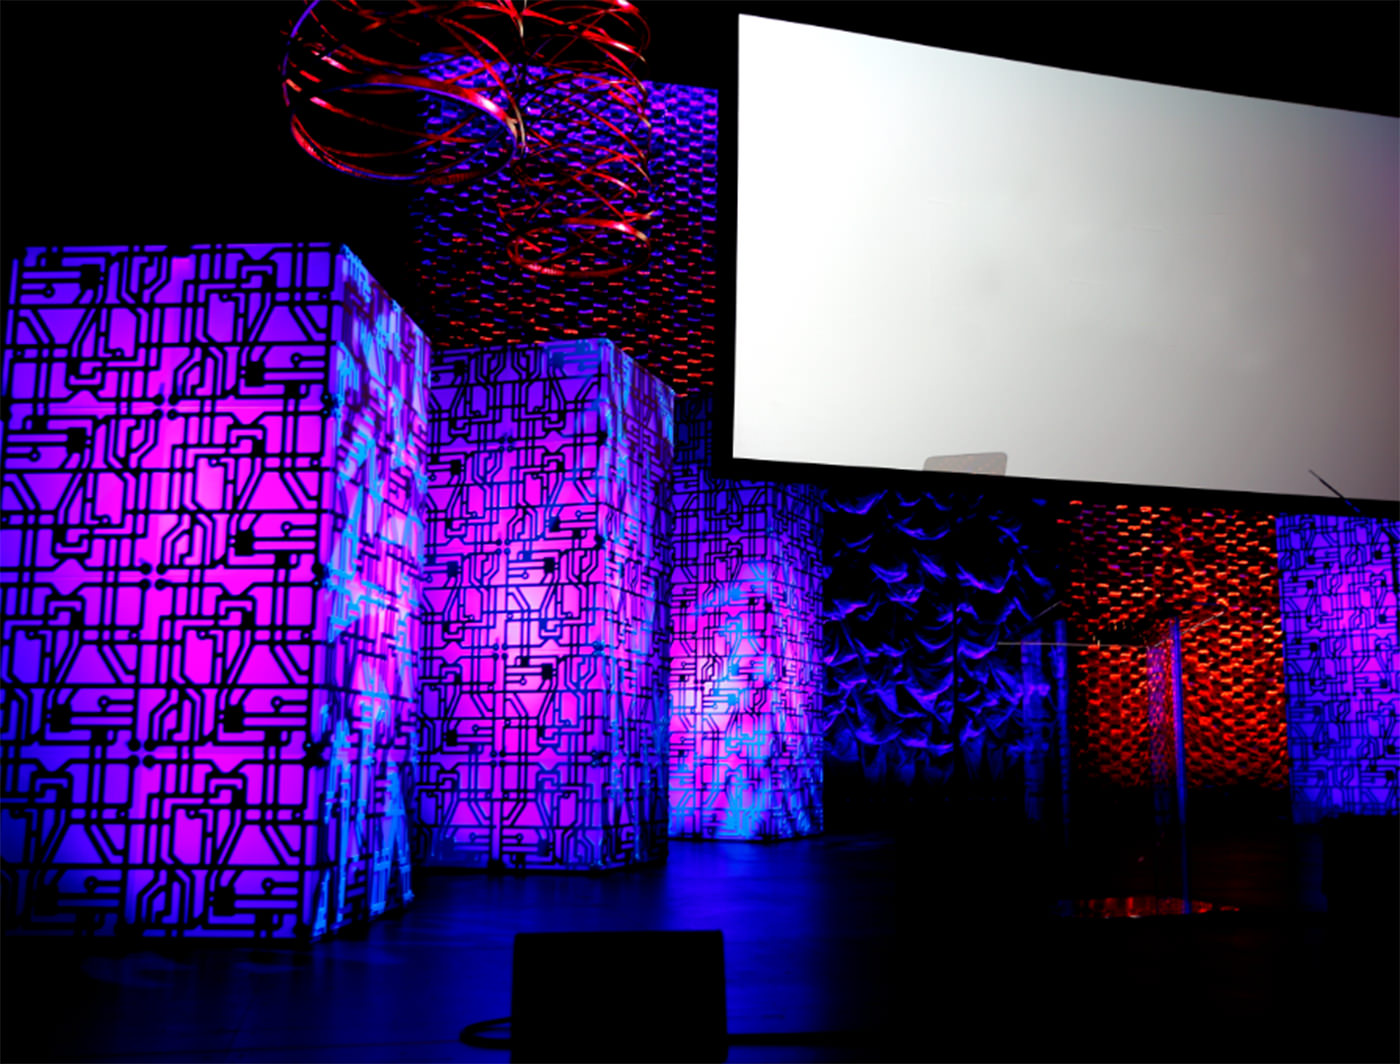 Circuit Rental Backdrops Decor From Atomic How To Design Boards And Frosty Supercolumns On Stage With Shoal Laser Superzipper